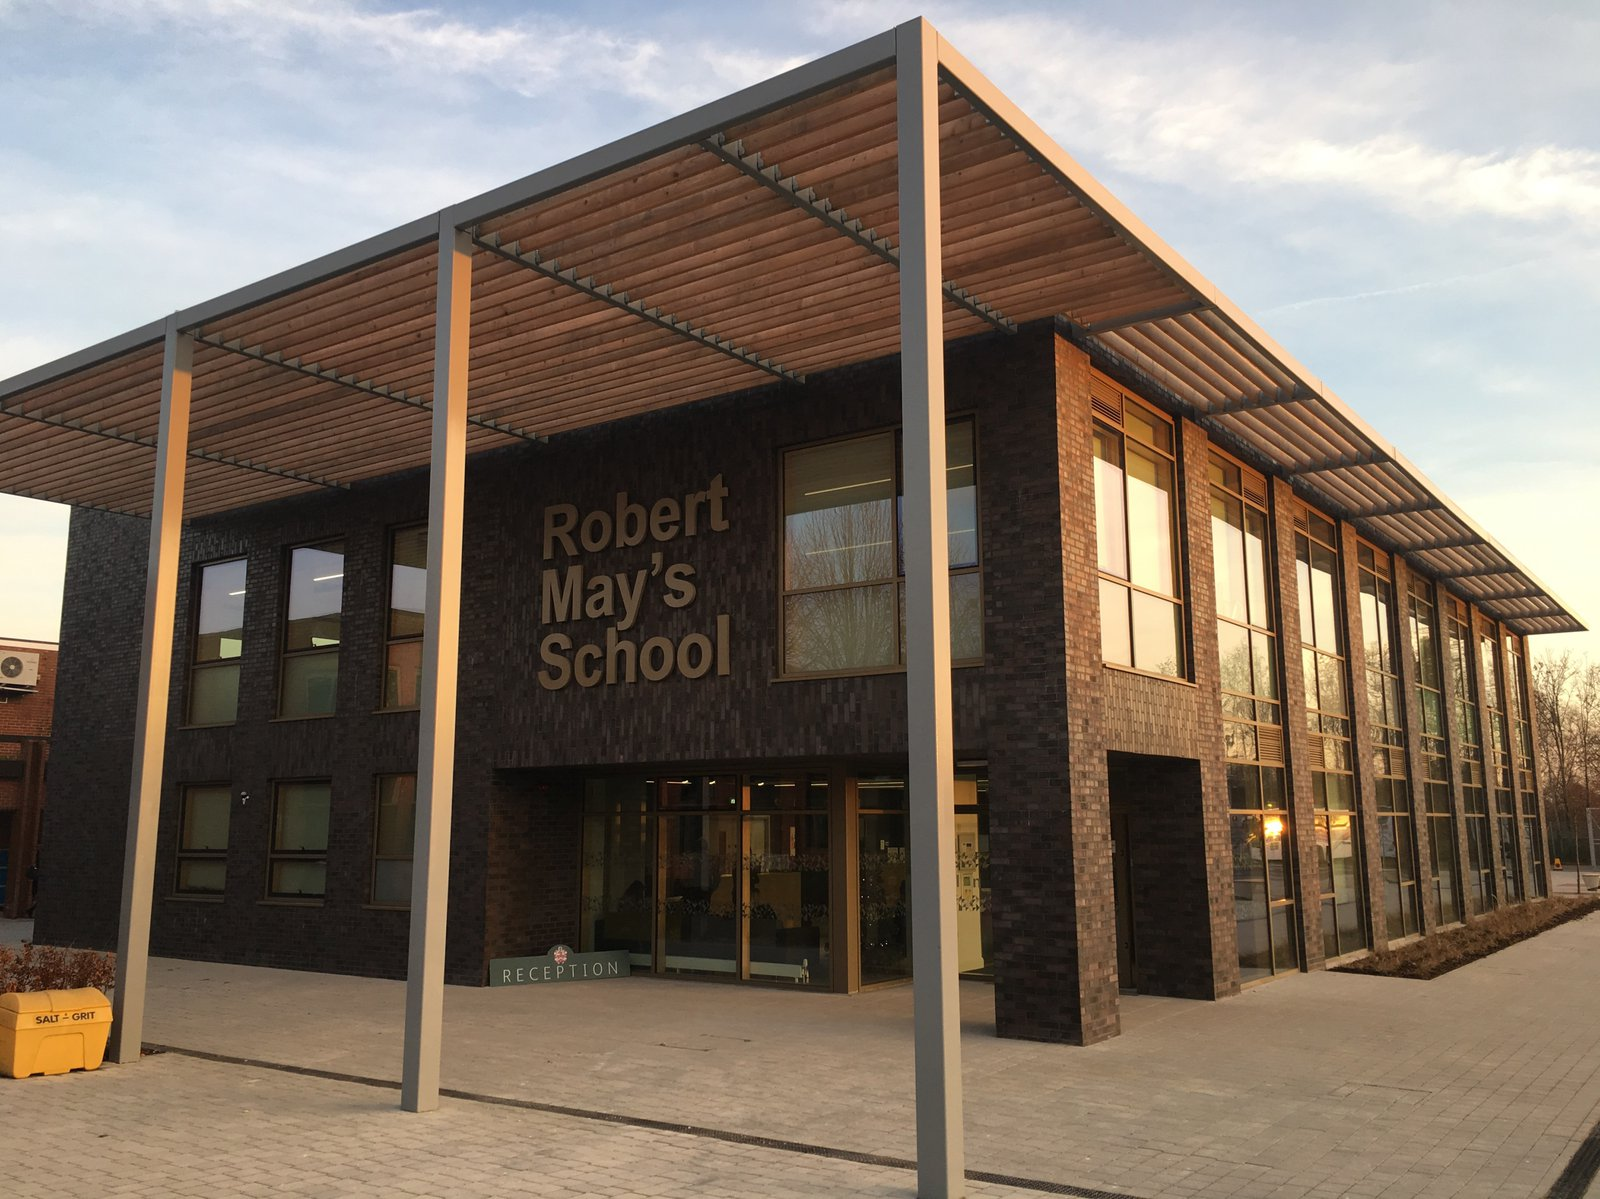 Image of the front entrance to Robert May's School in Odiham, Hampshire